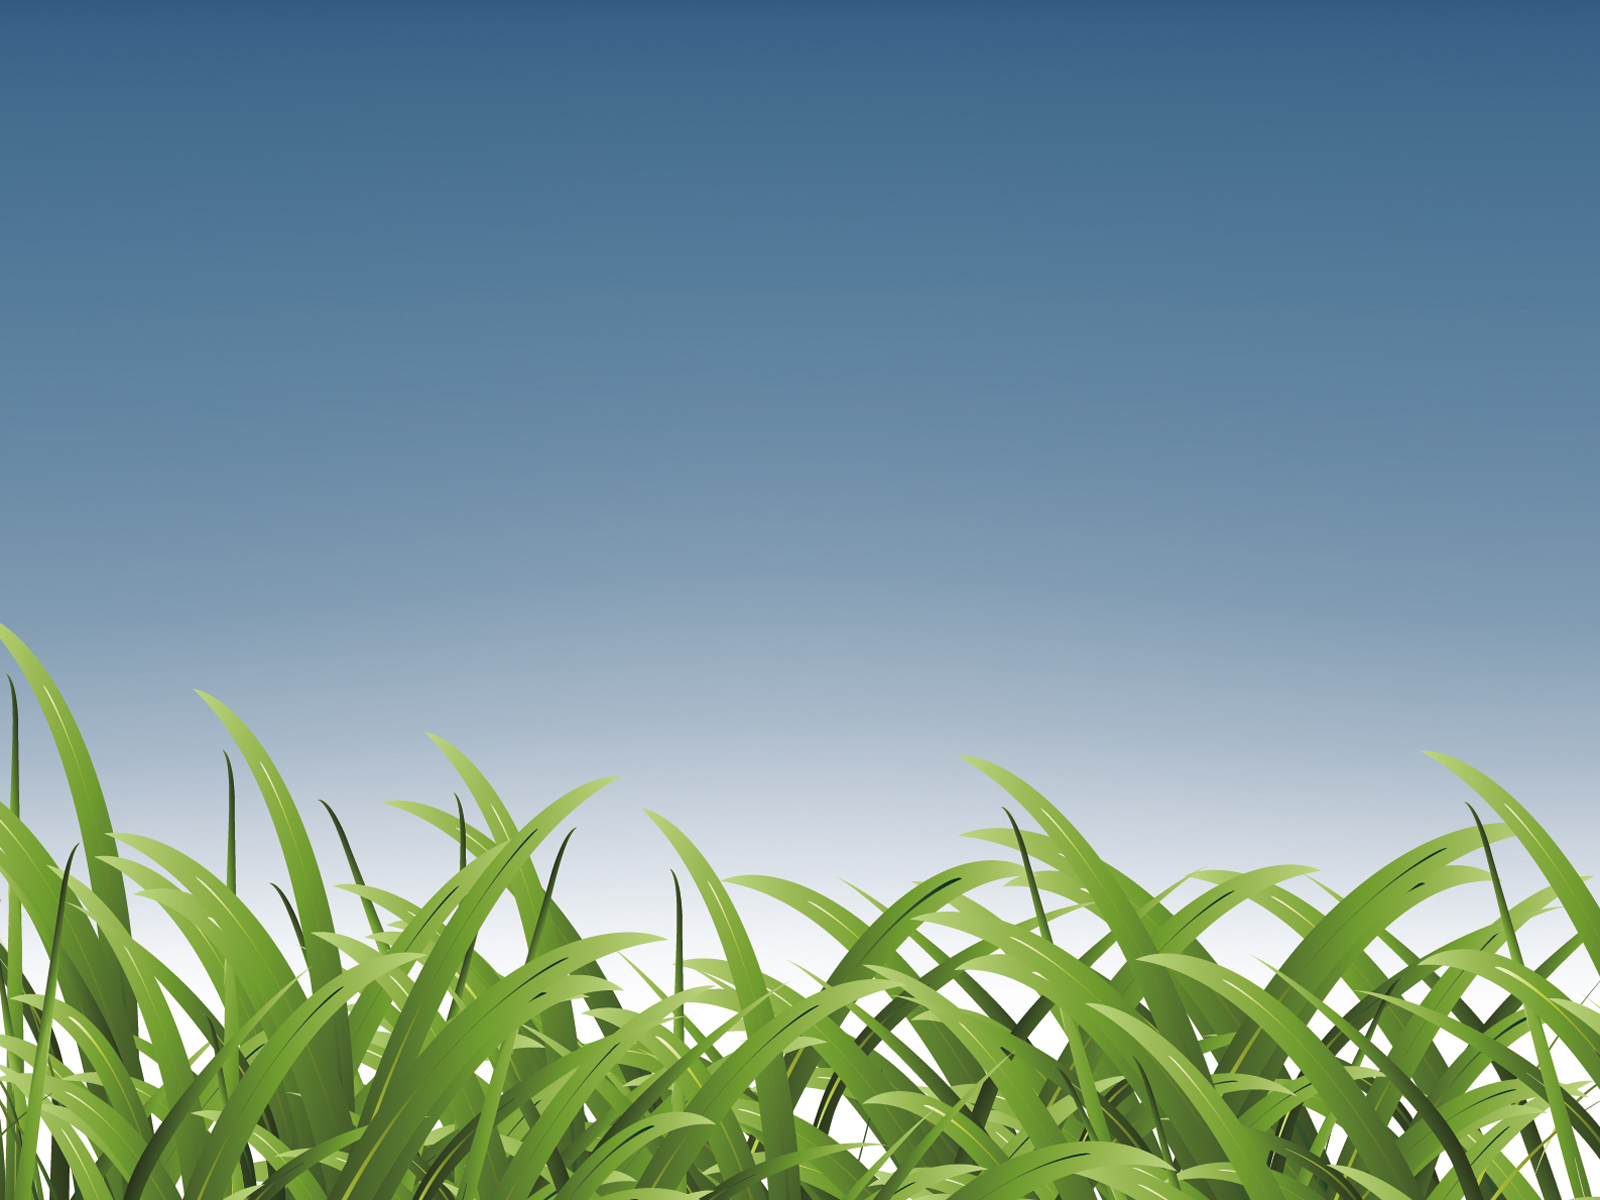 grass for sports ppt backgrounds - sports templates - ppt grounds, Modern powerpoint